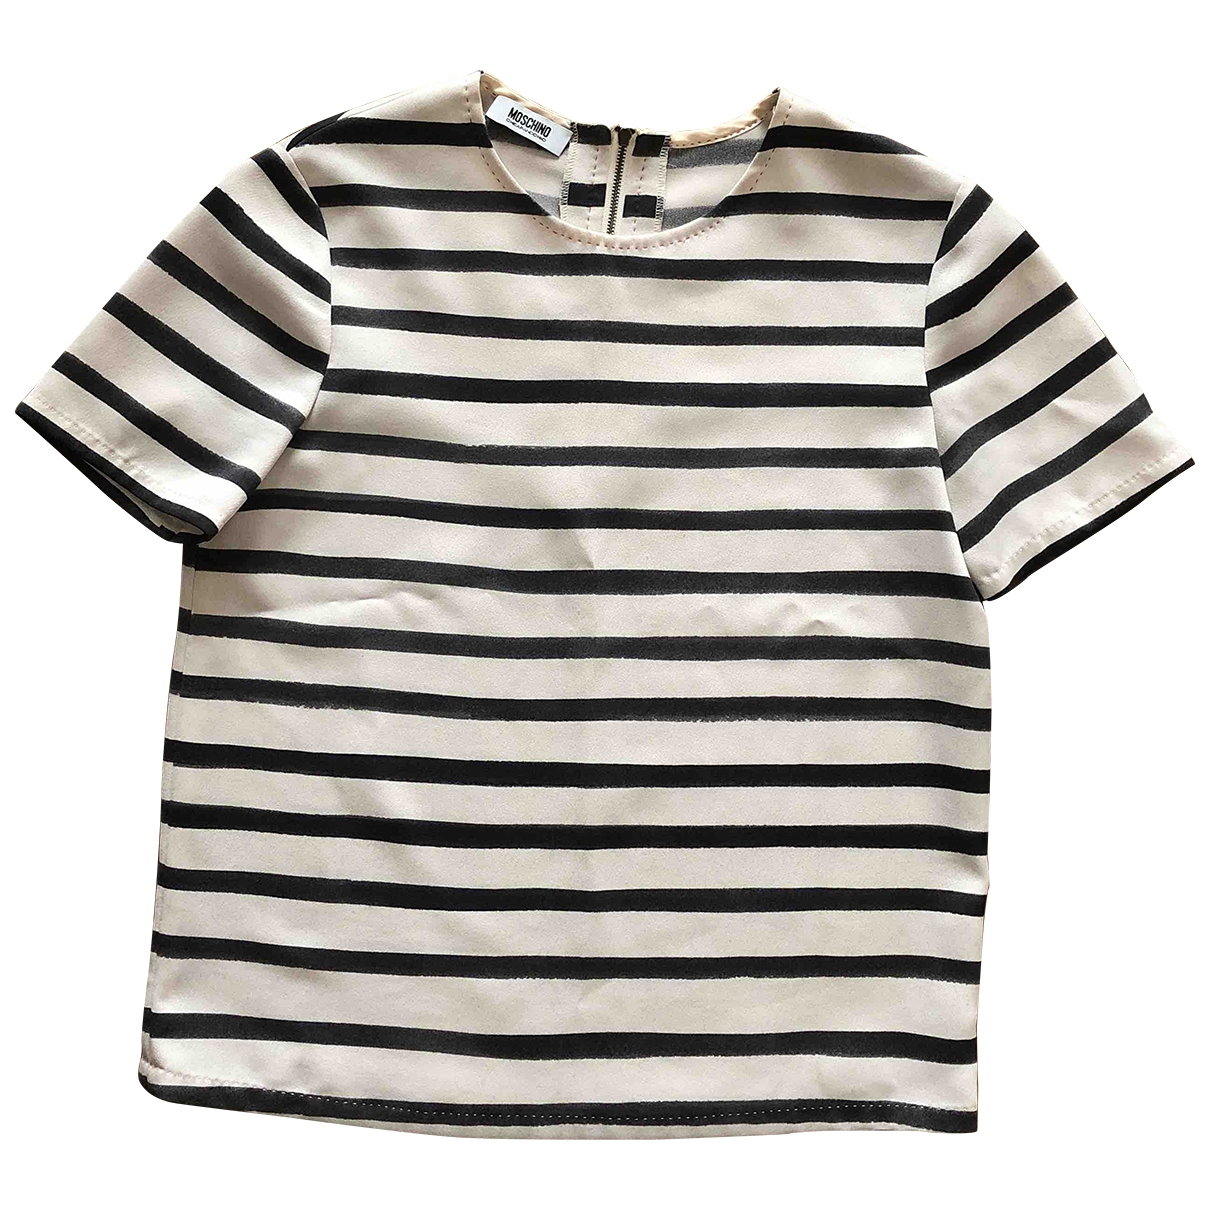 Moschino Cheap And Chic \N White  top for Women 42 IT